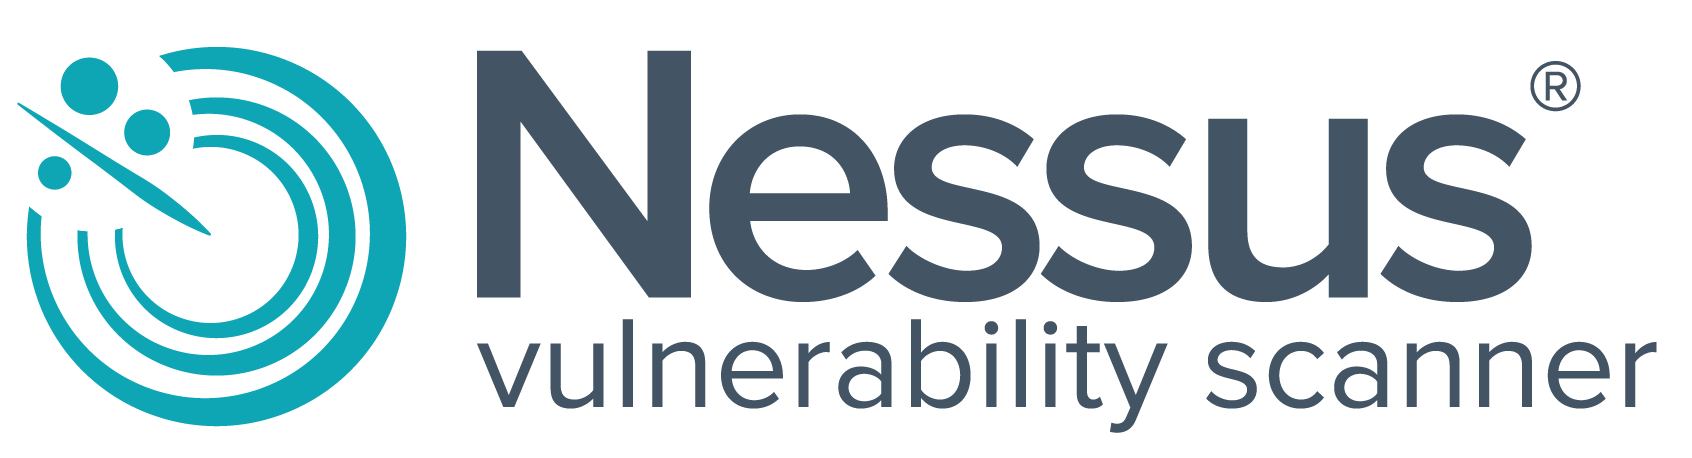 Vulnerability Scanning With Metasploit using Nessus | LINUX DIGEST